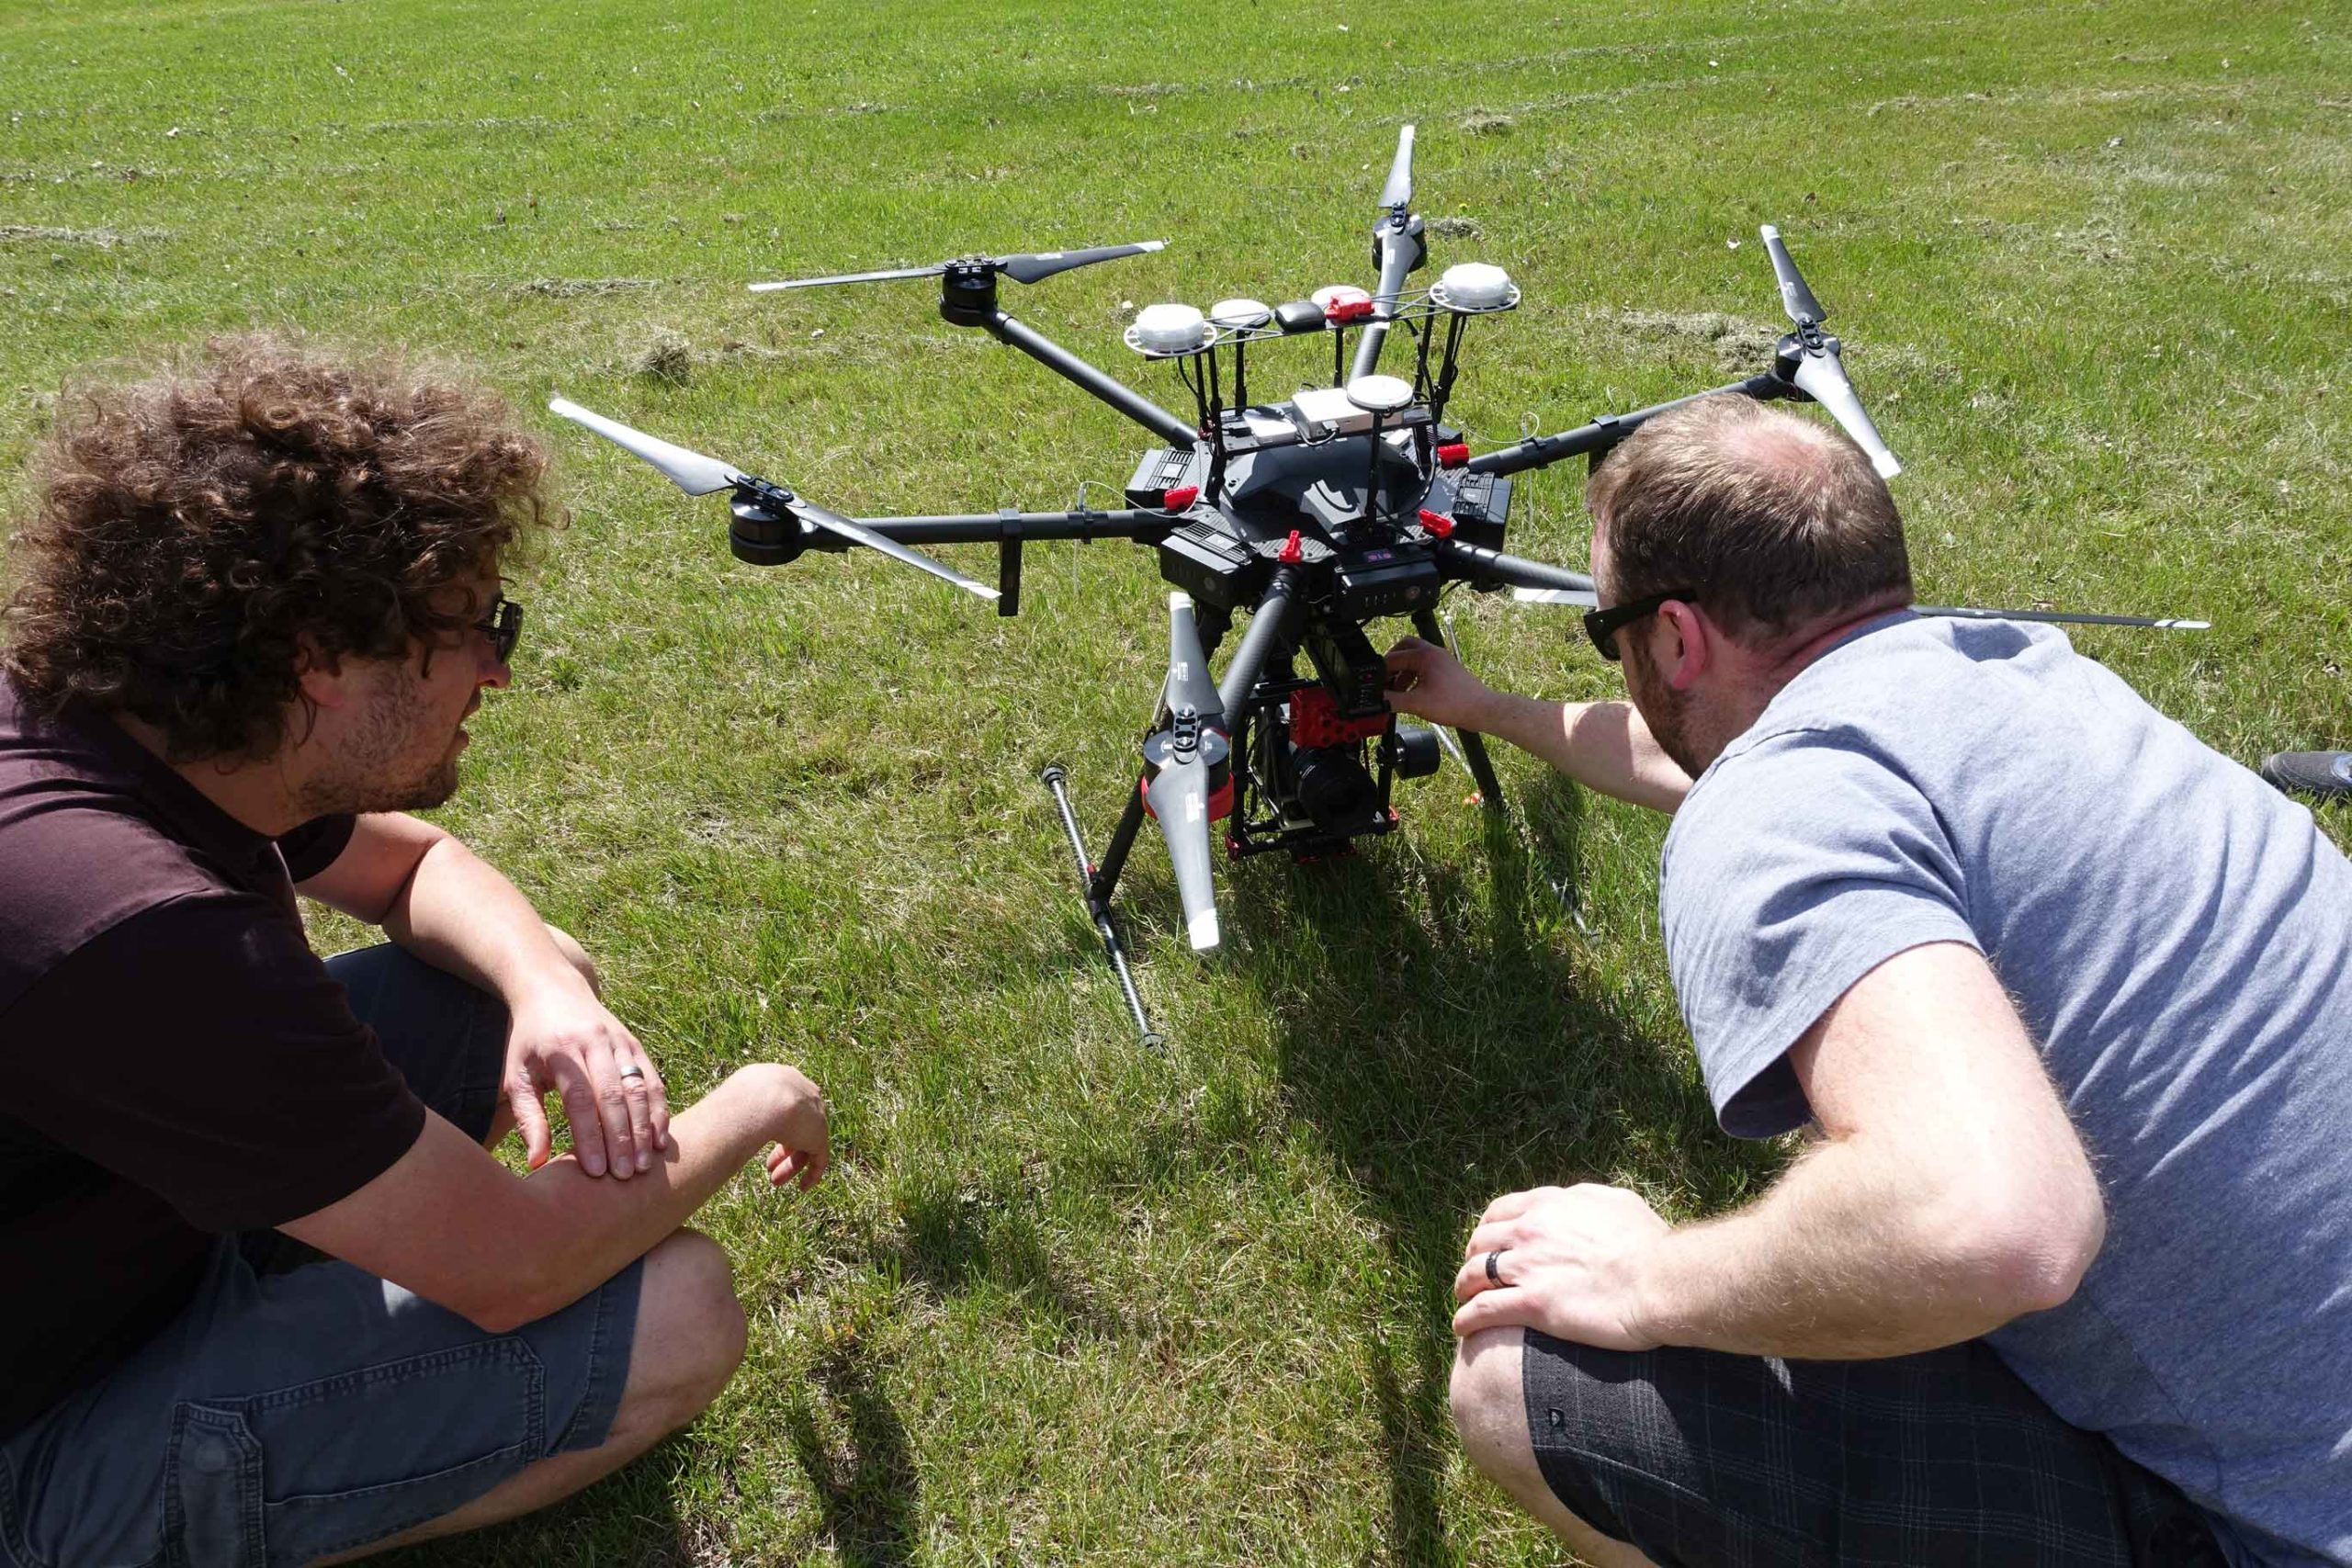 On-site drone training